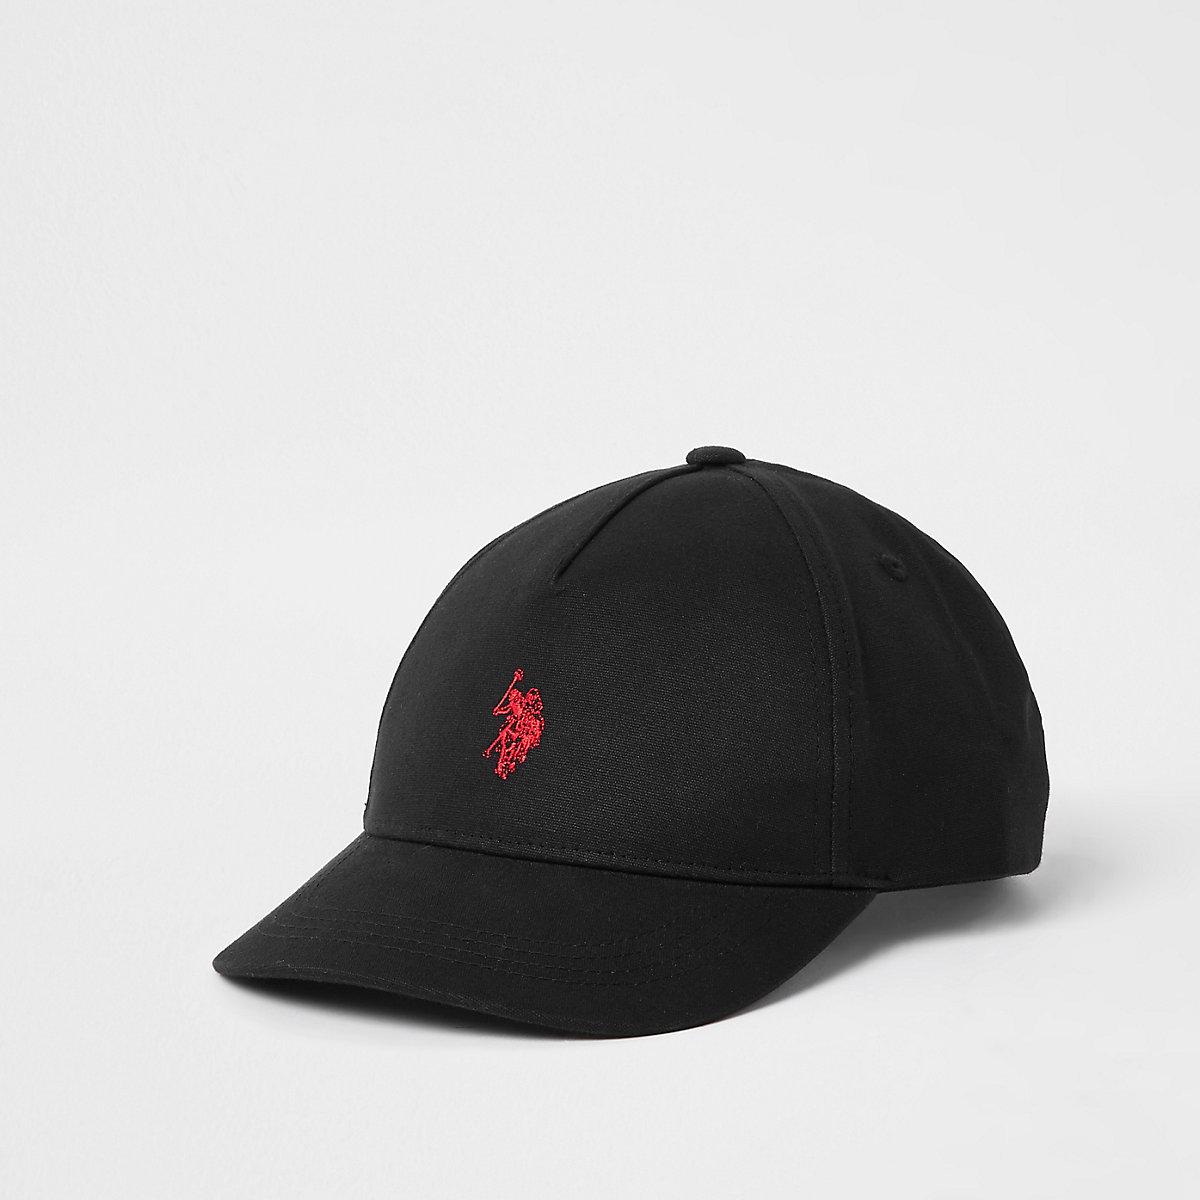 Boys black U.S. Polo Assn. cap